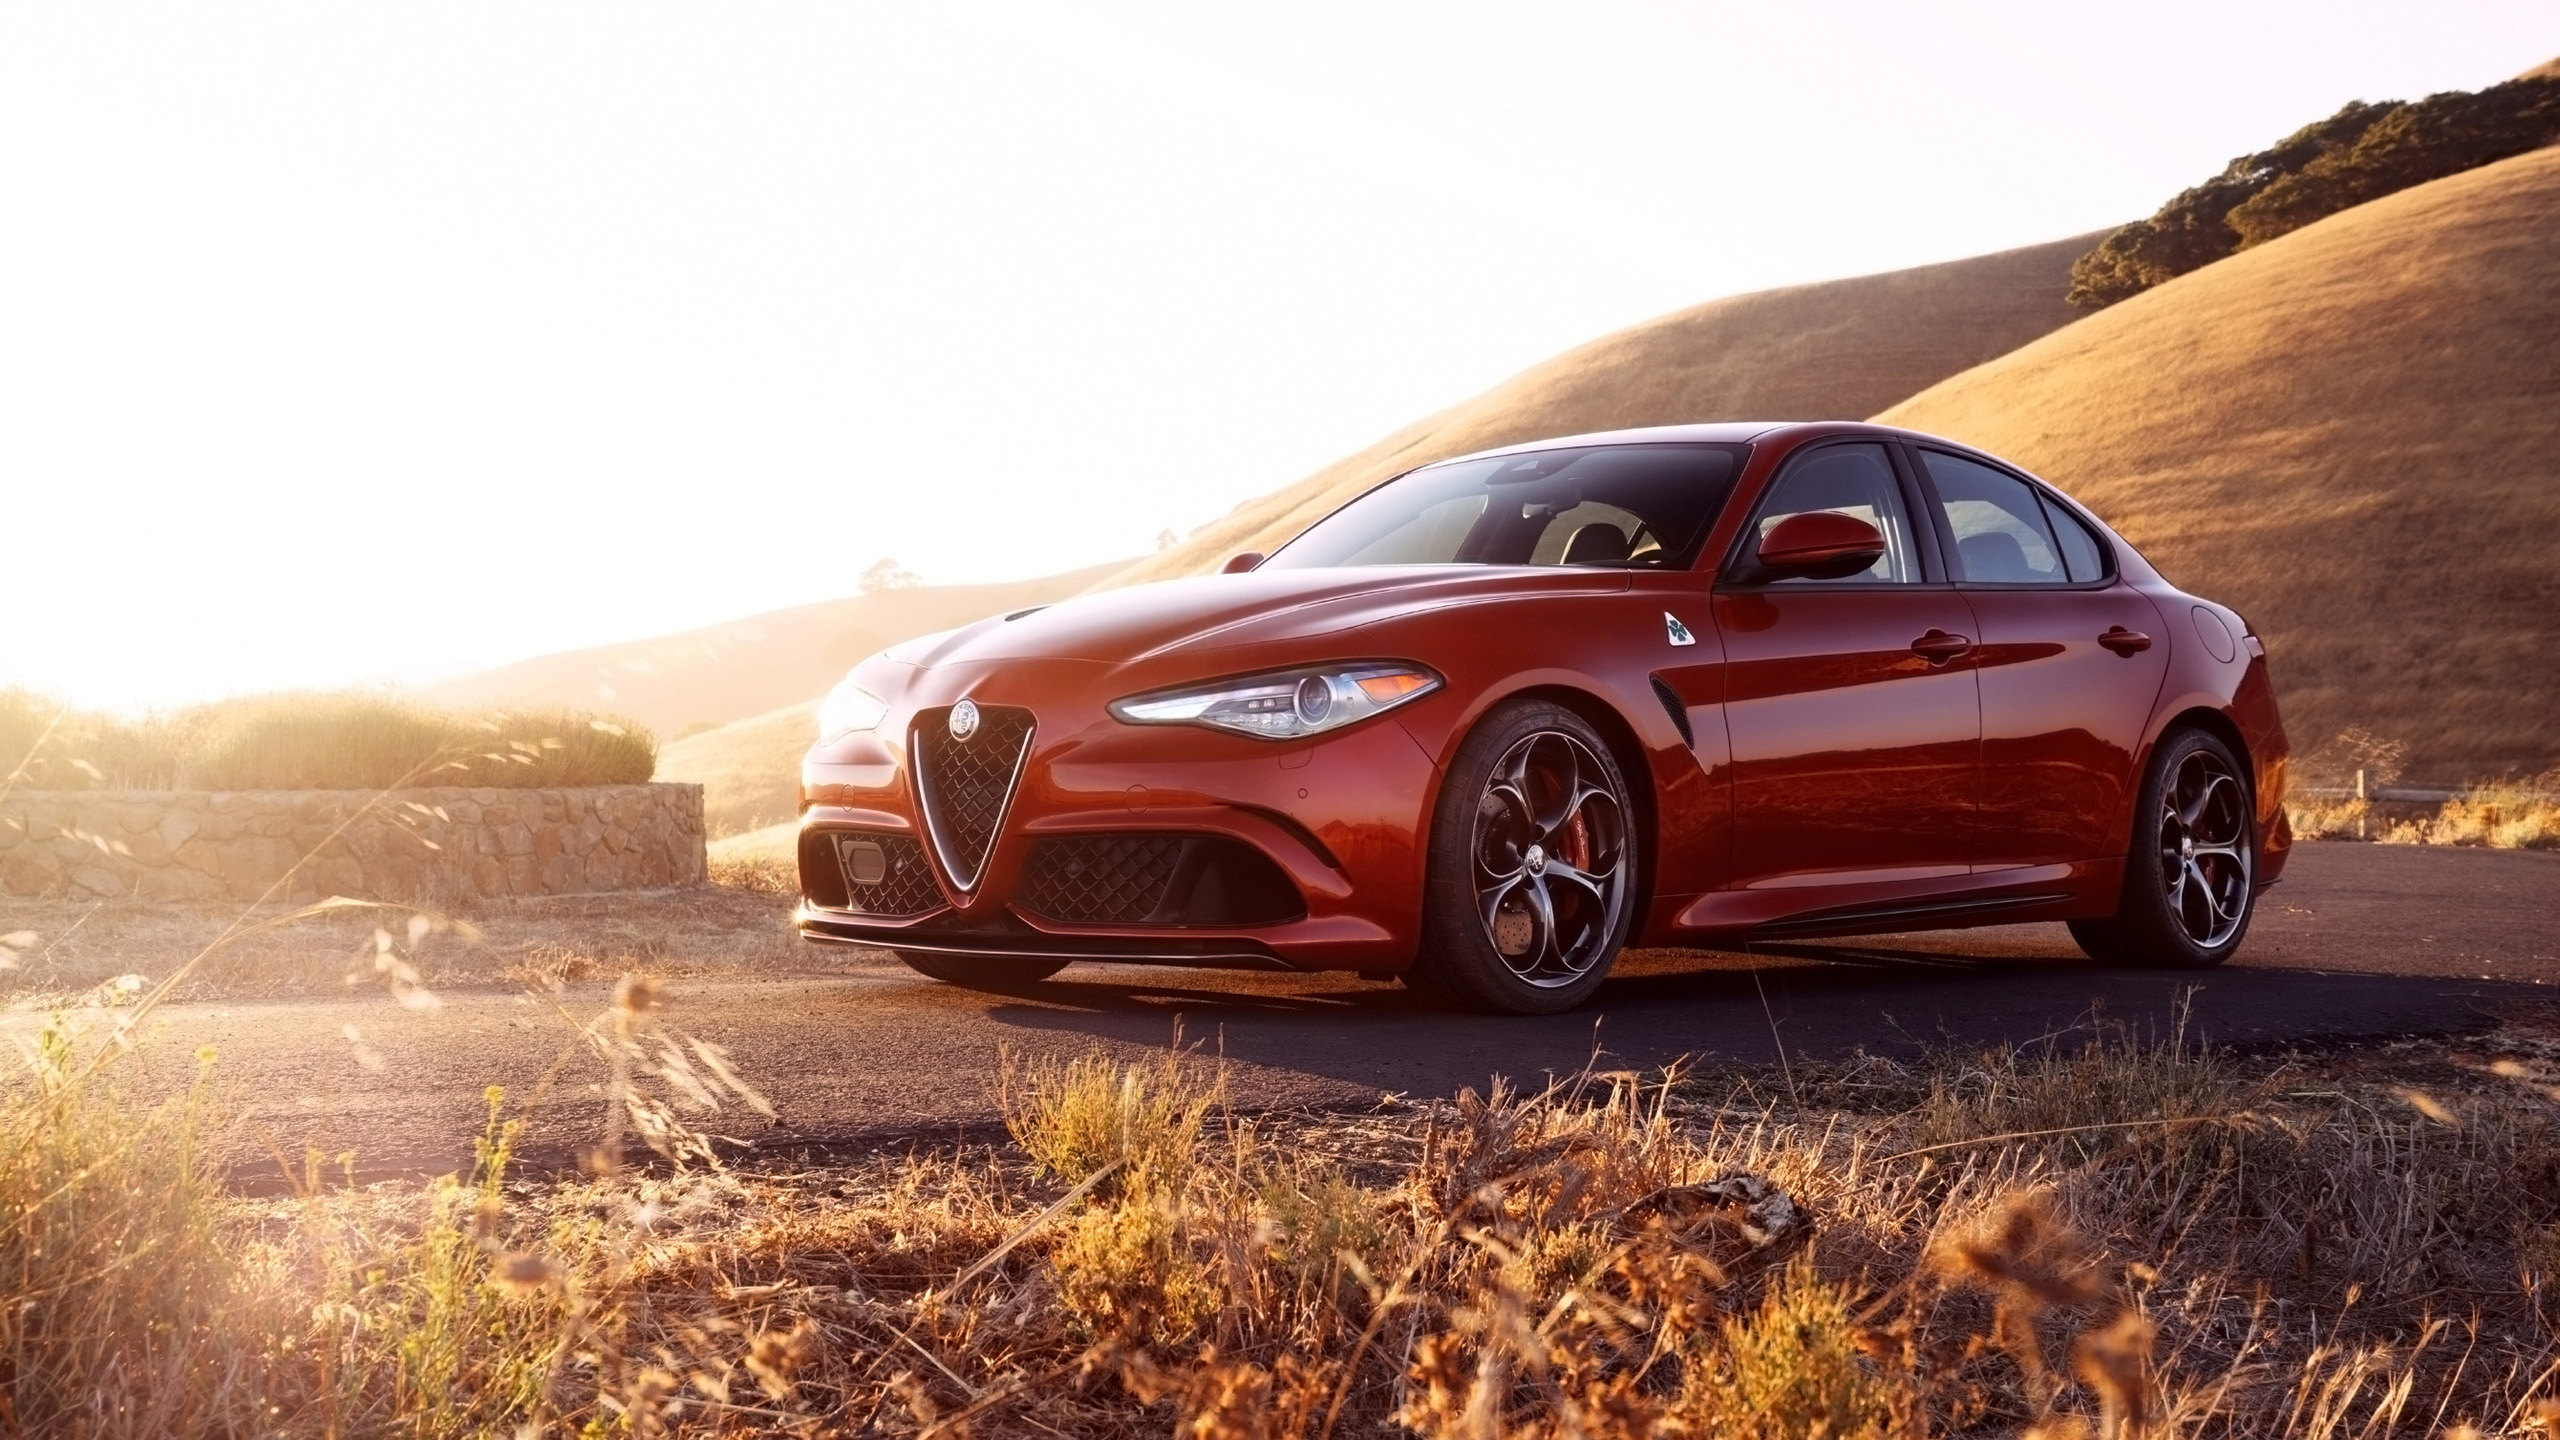 2017 Alfa Romeo Giulia Quadrifoglio 4 Wallpaper Hd Car